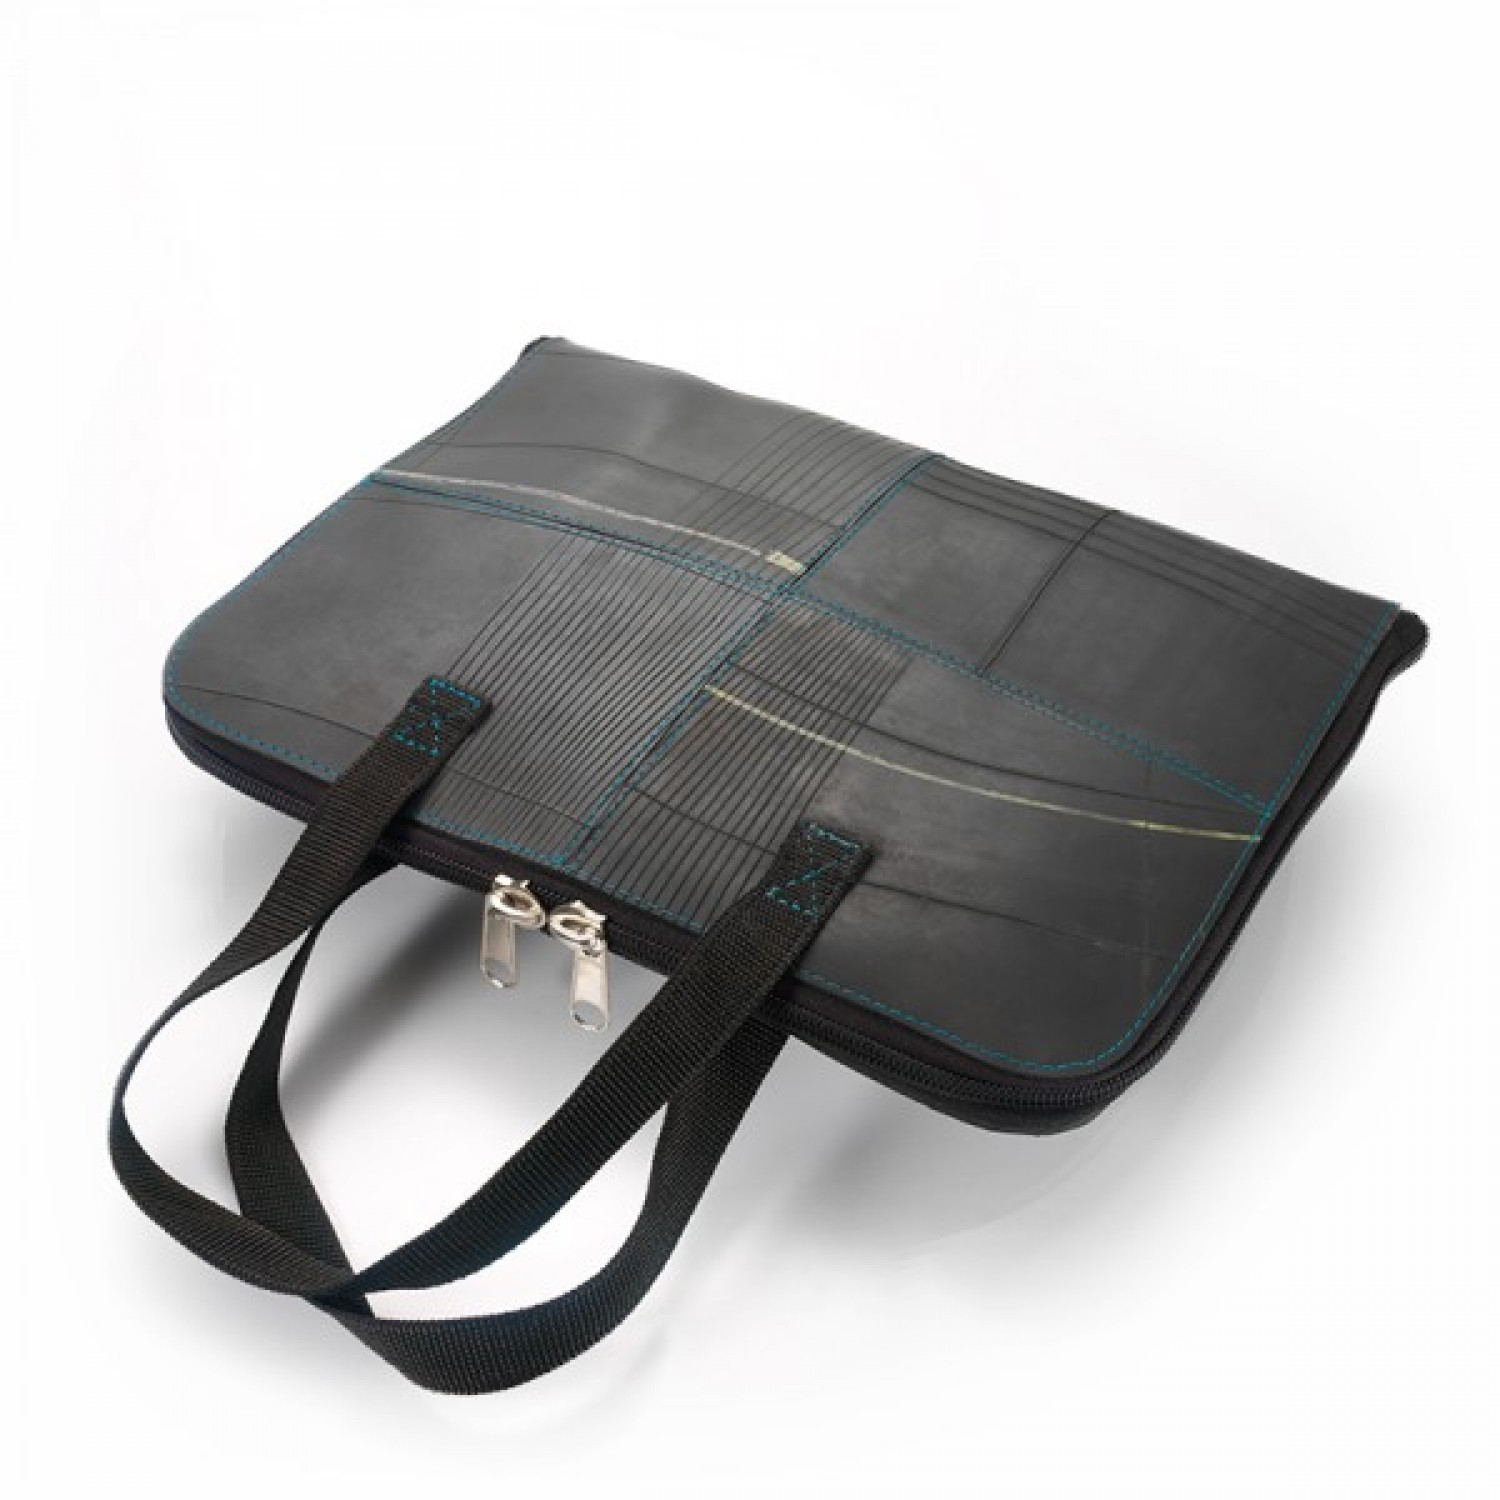 Armi L | Laptop bag | Notebook Case